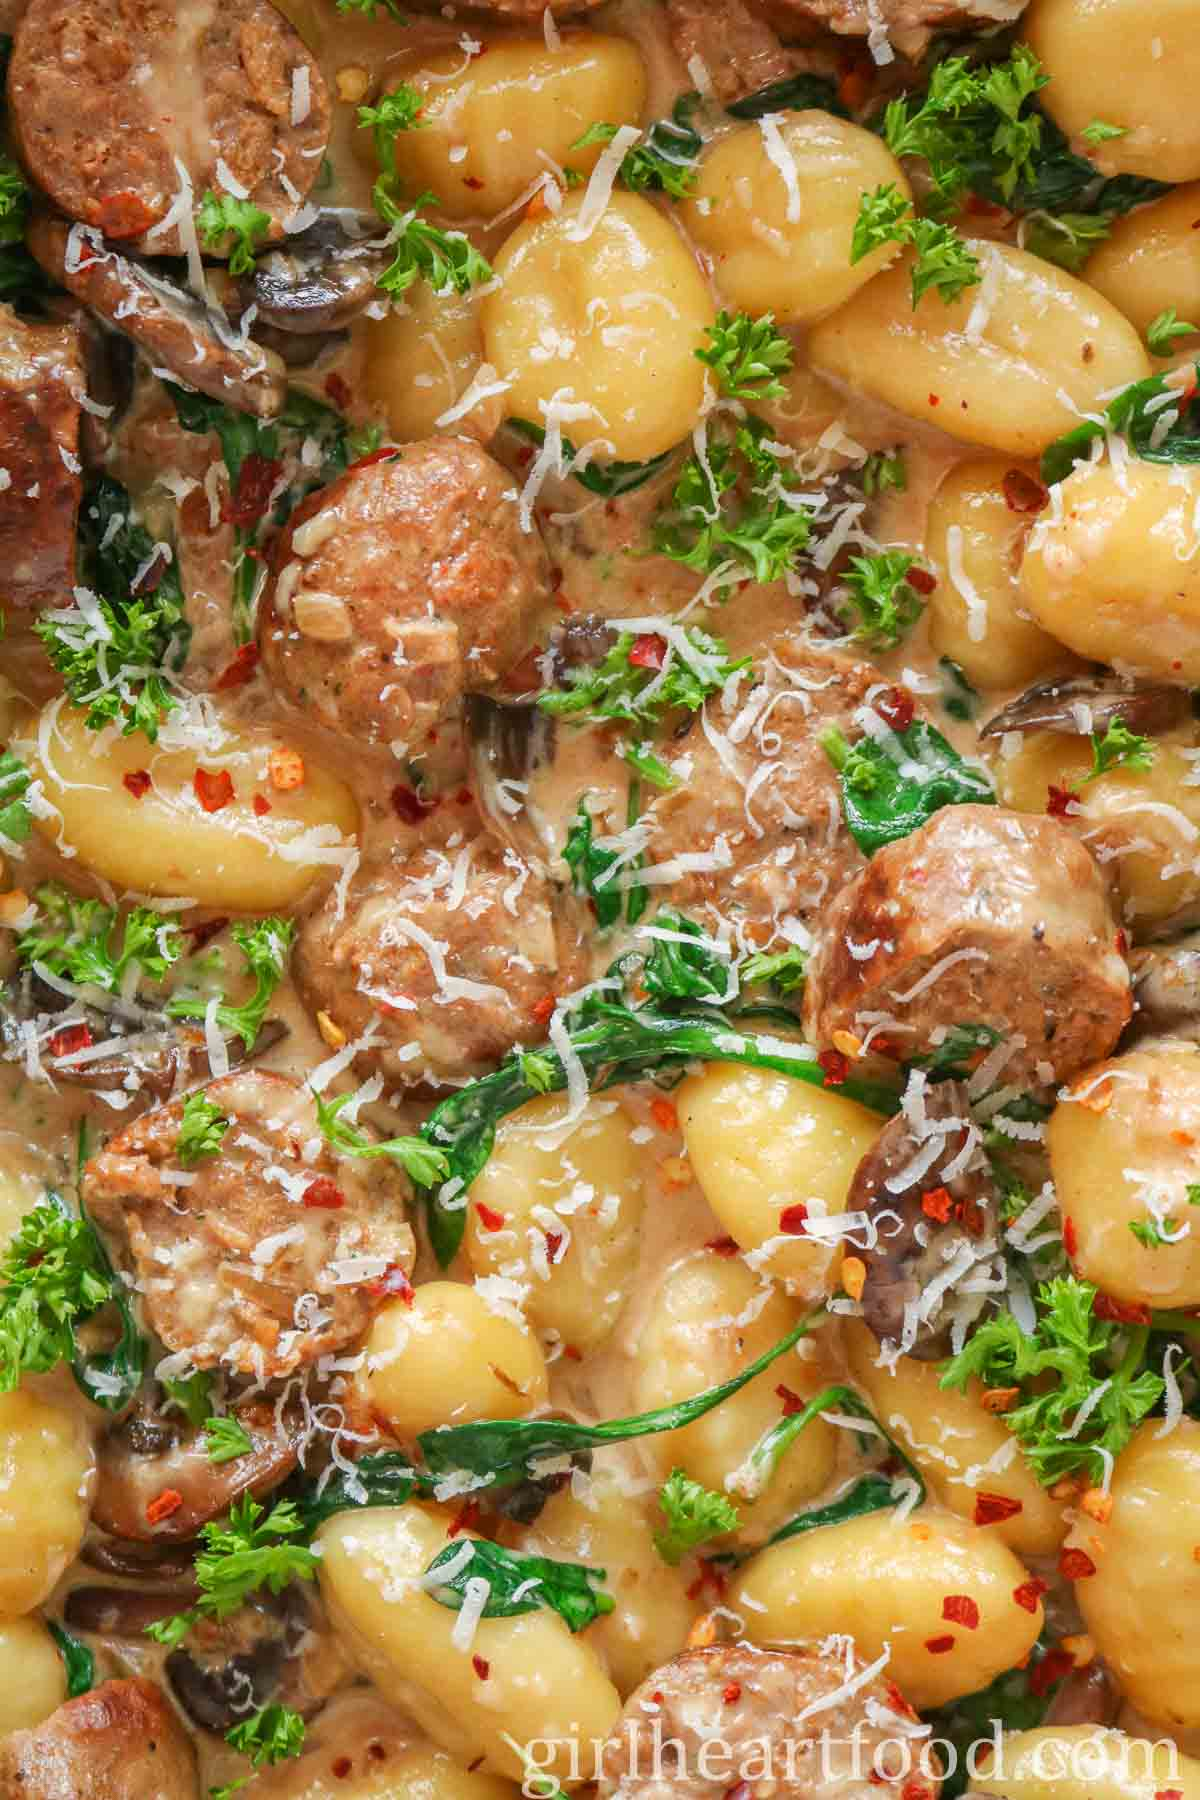 Close-up of gnocchi, sausage, mushrooms and spinach in cream sauce.